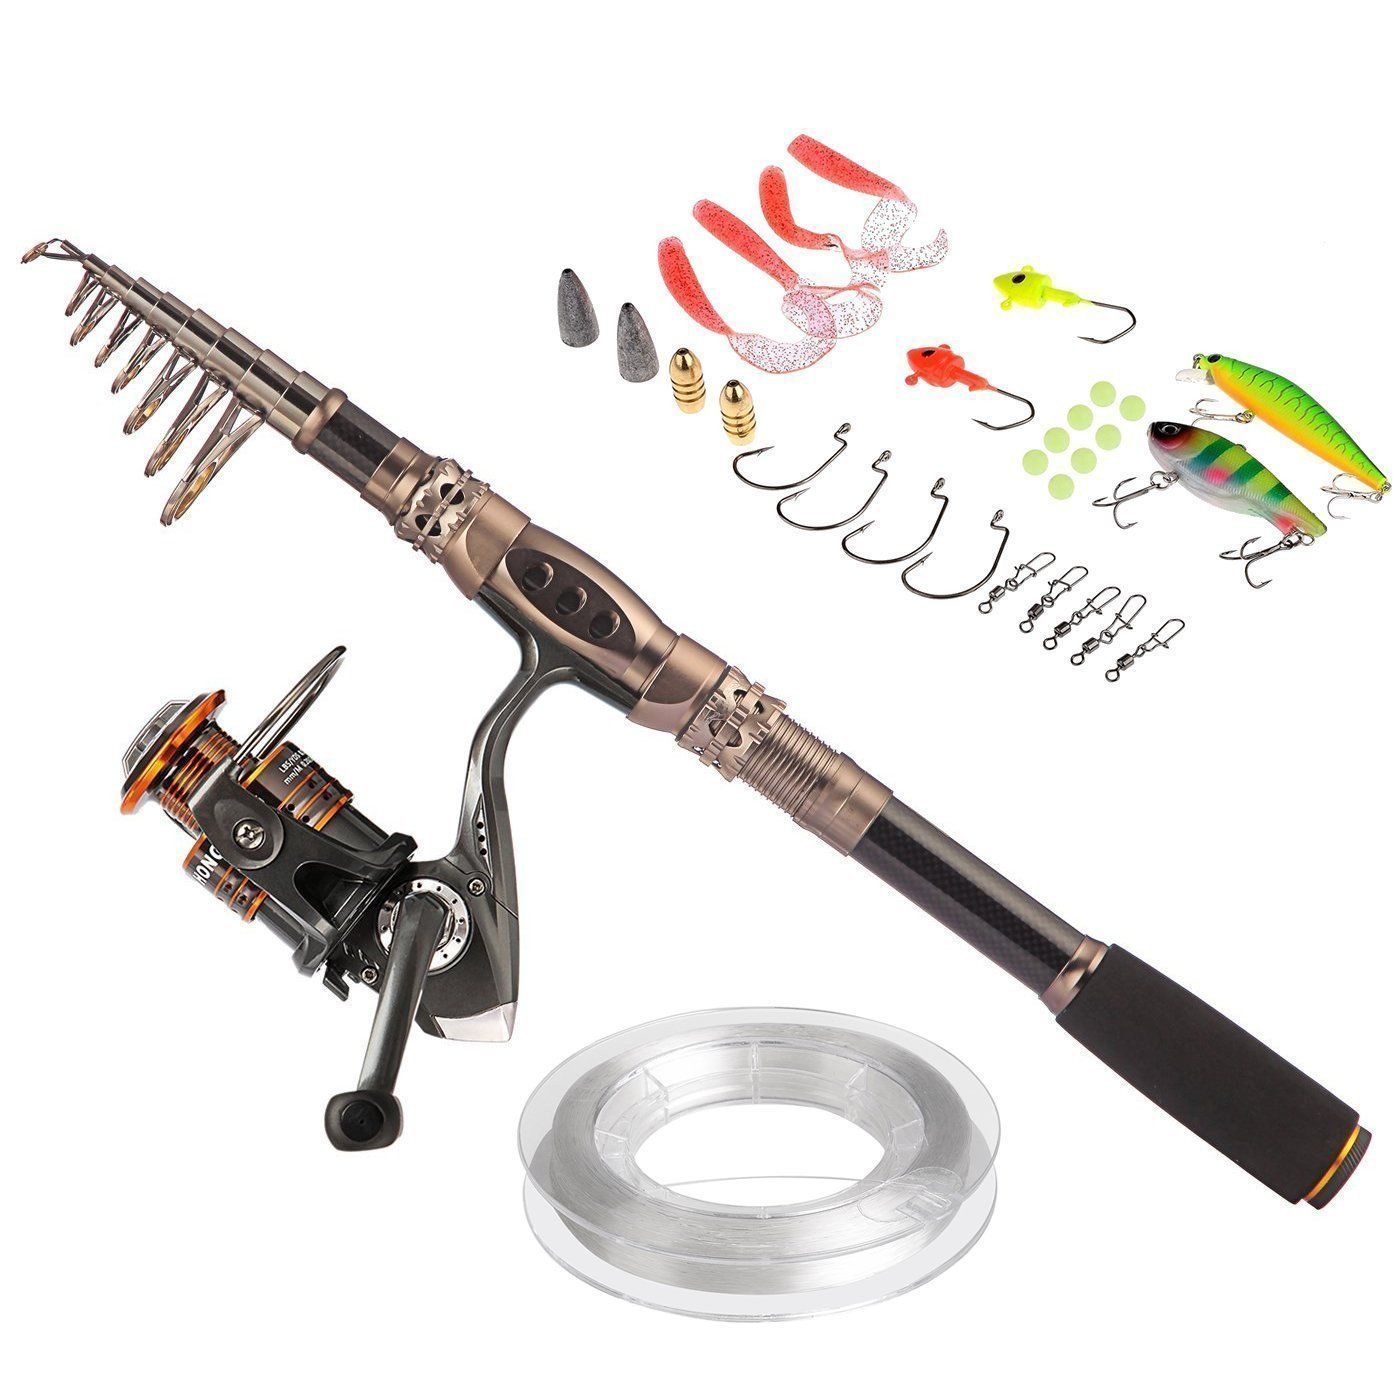 10. PLUSINNO Fishing Rod and Reel Combos